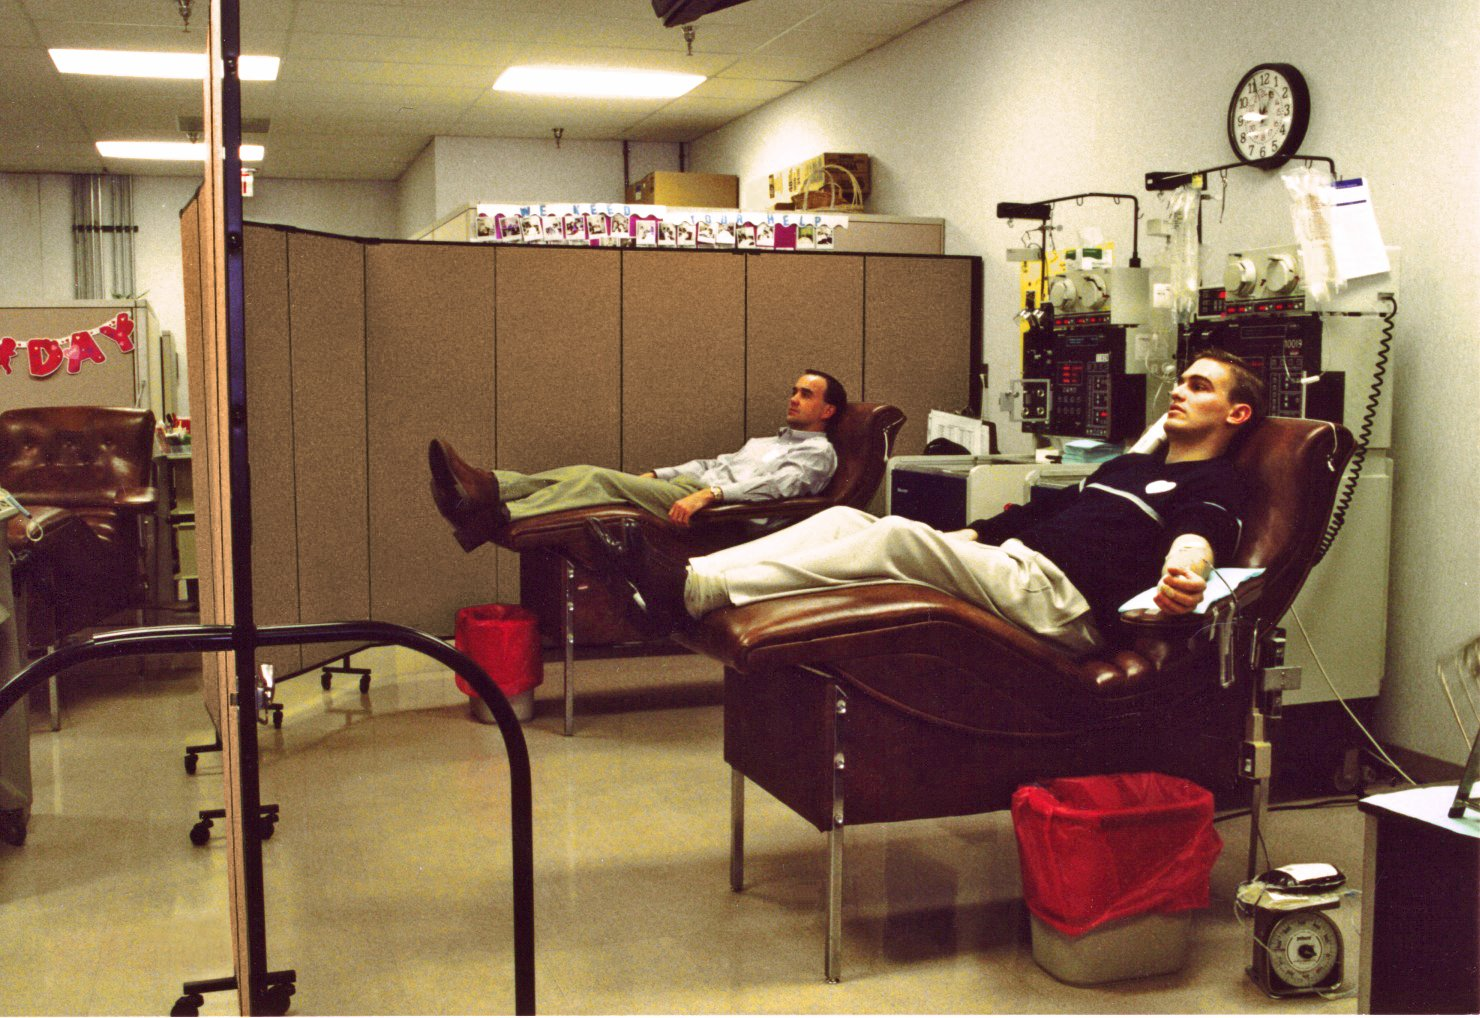 Patient privacy screens shield patients donating blood